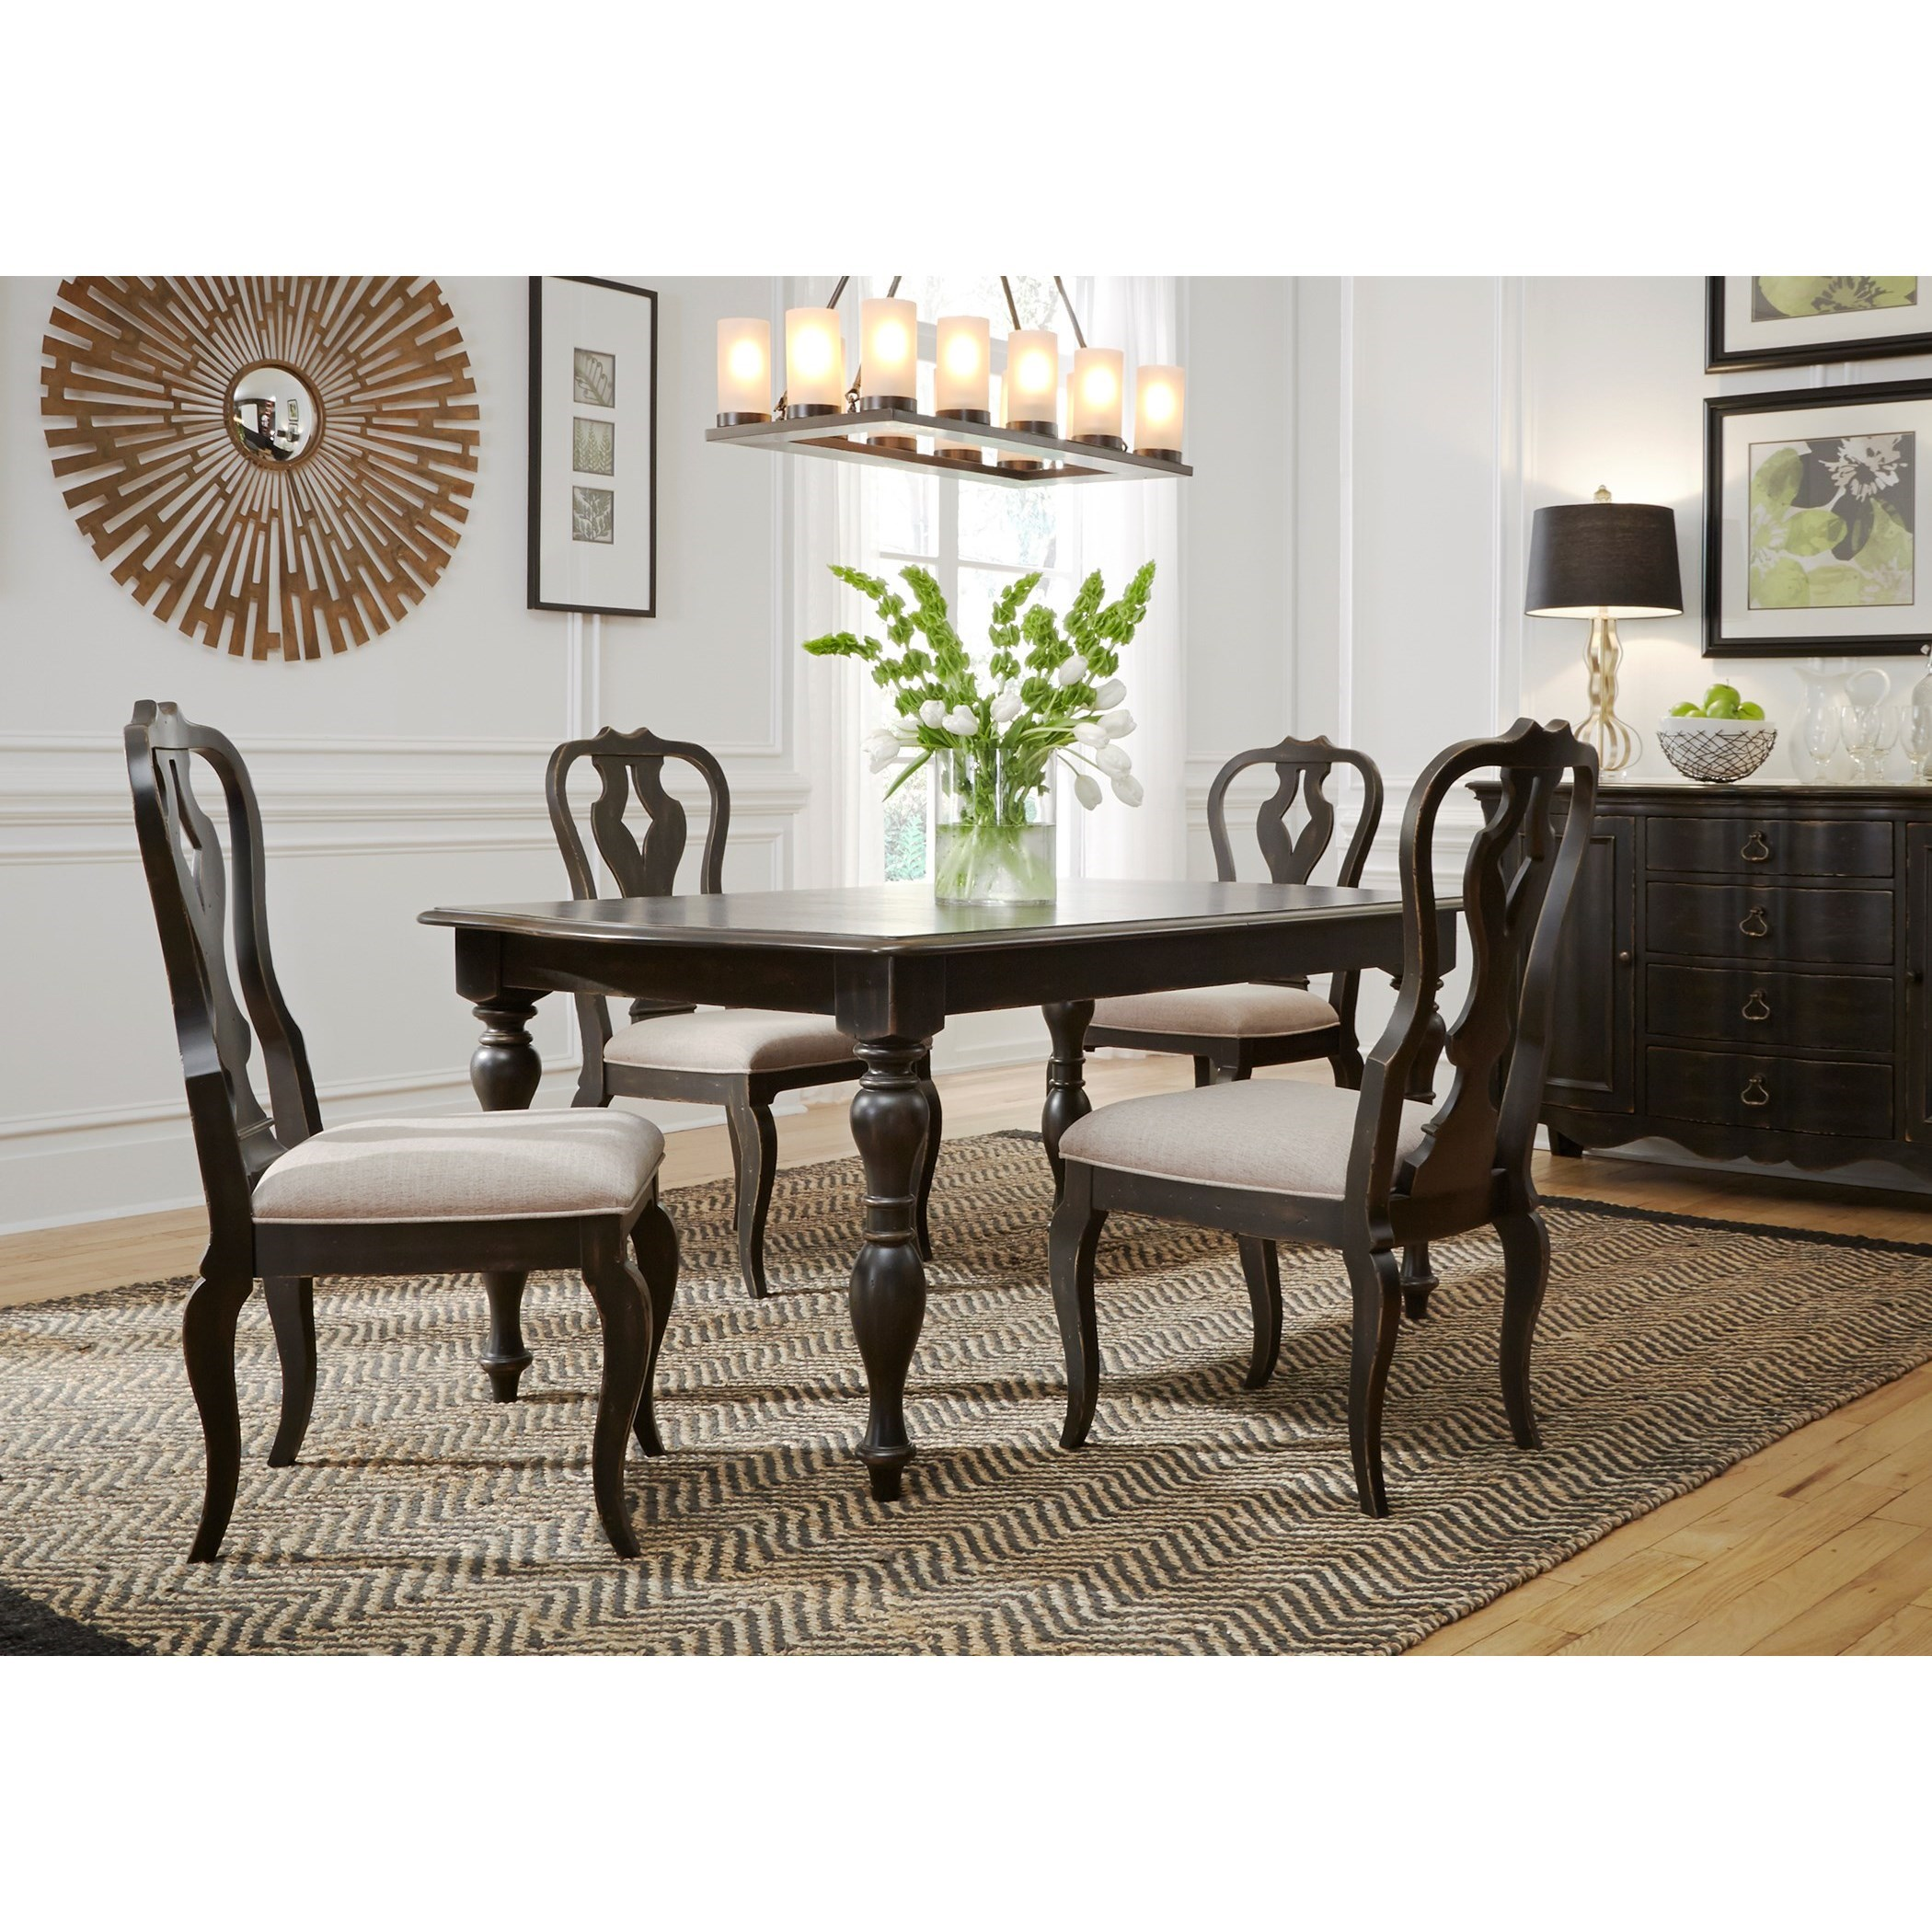 Chesapeake Dining Room Group by Liberty Furniture at Zak's Home